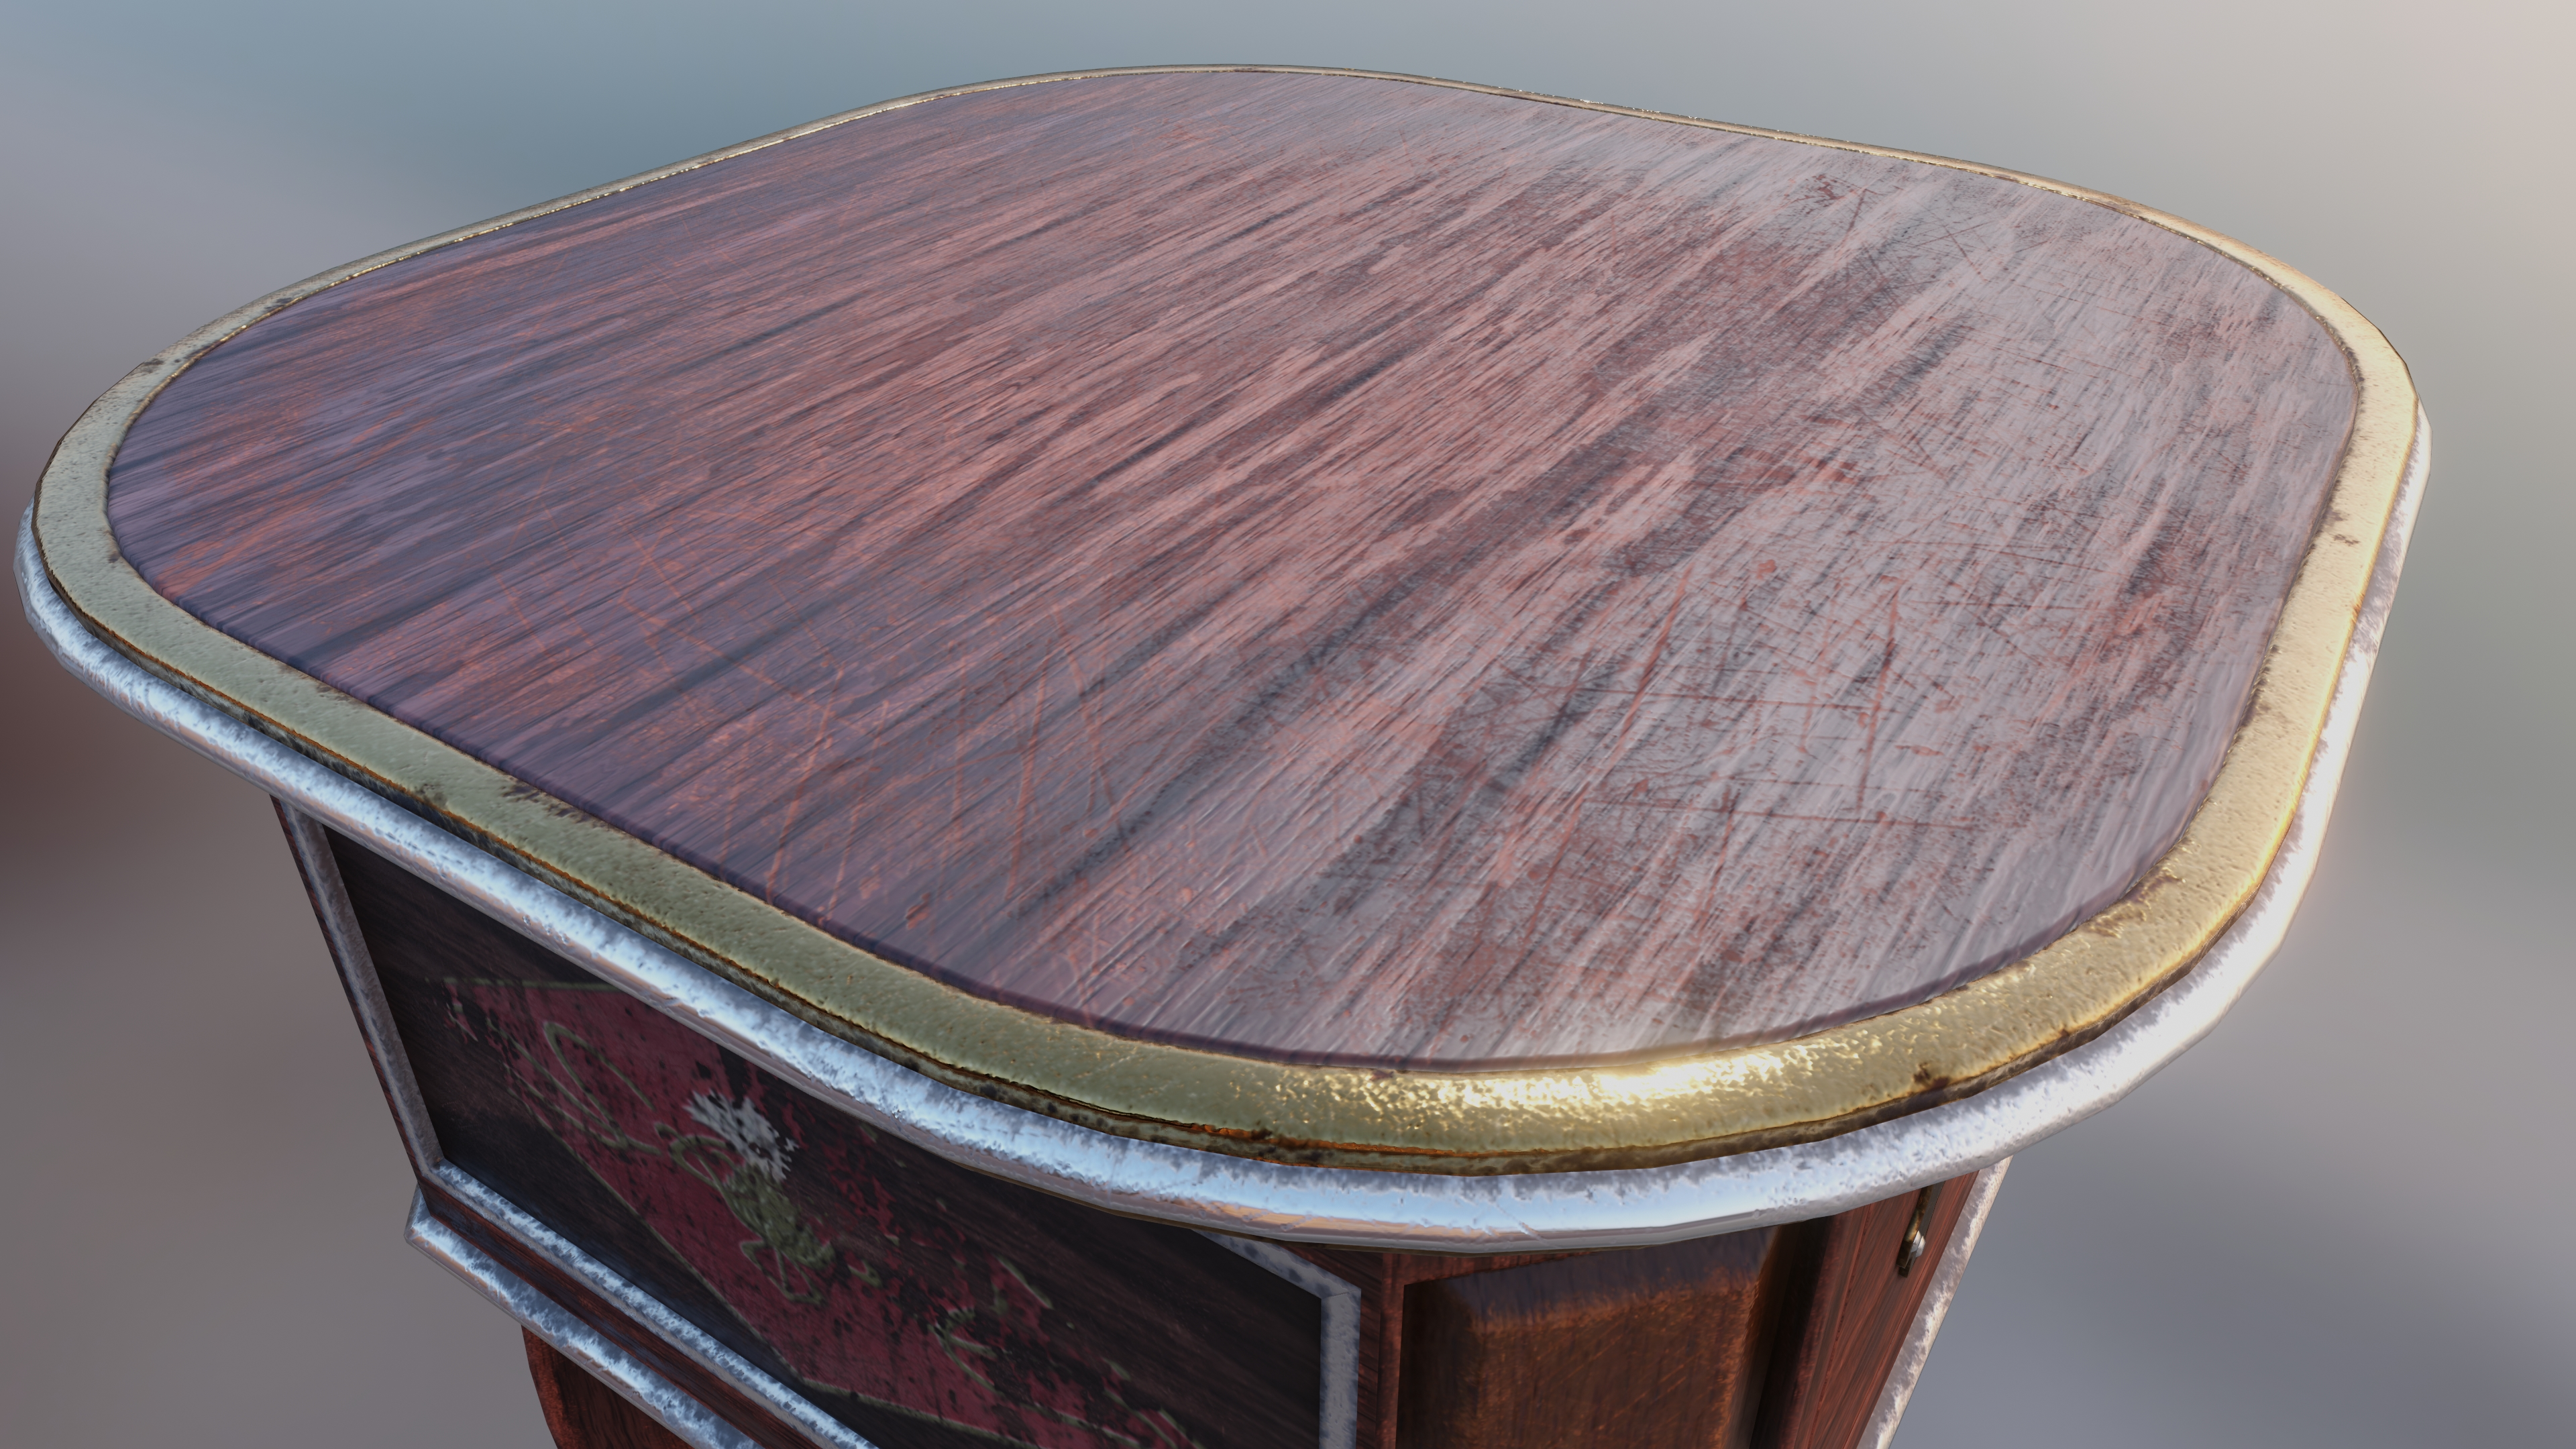 Stewarts Antique French Table preview image 5